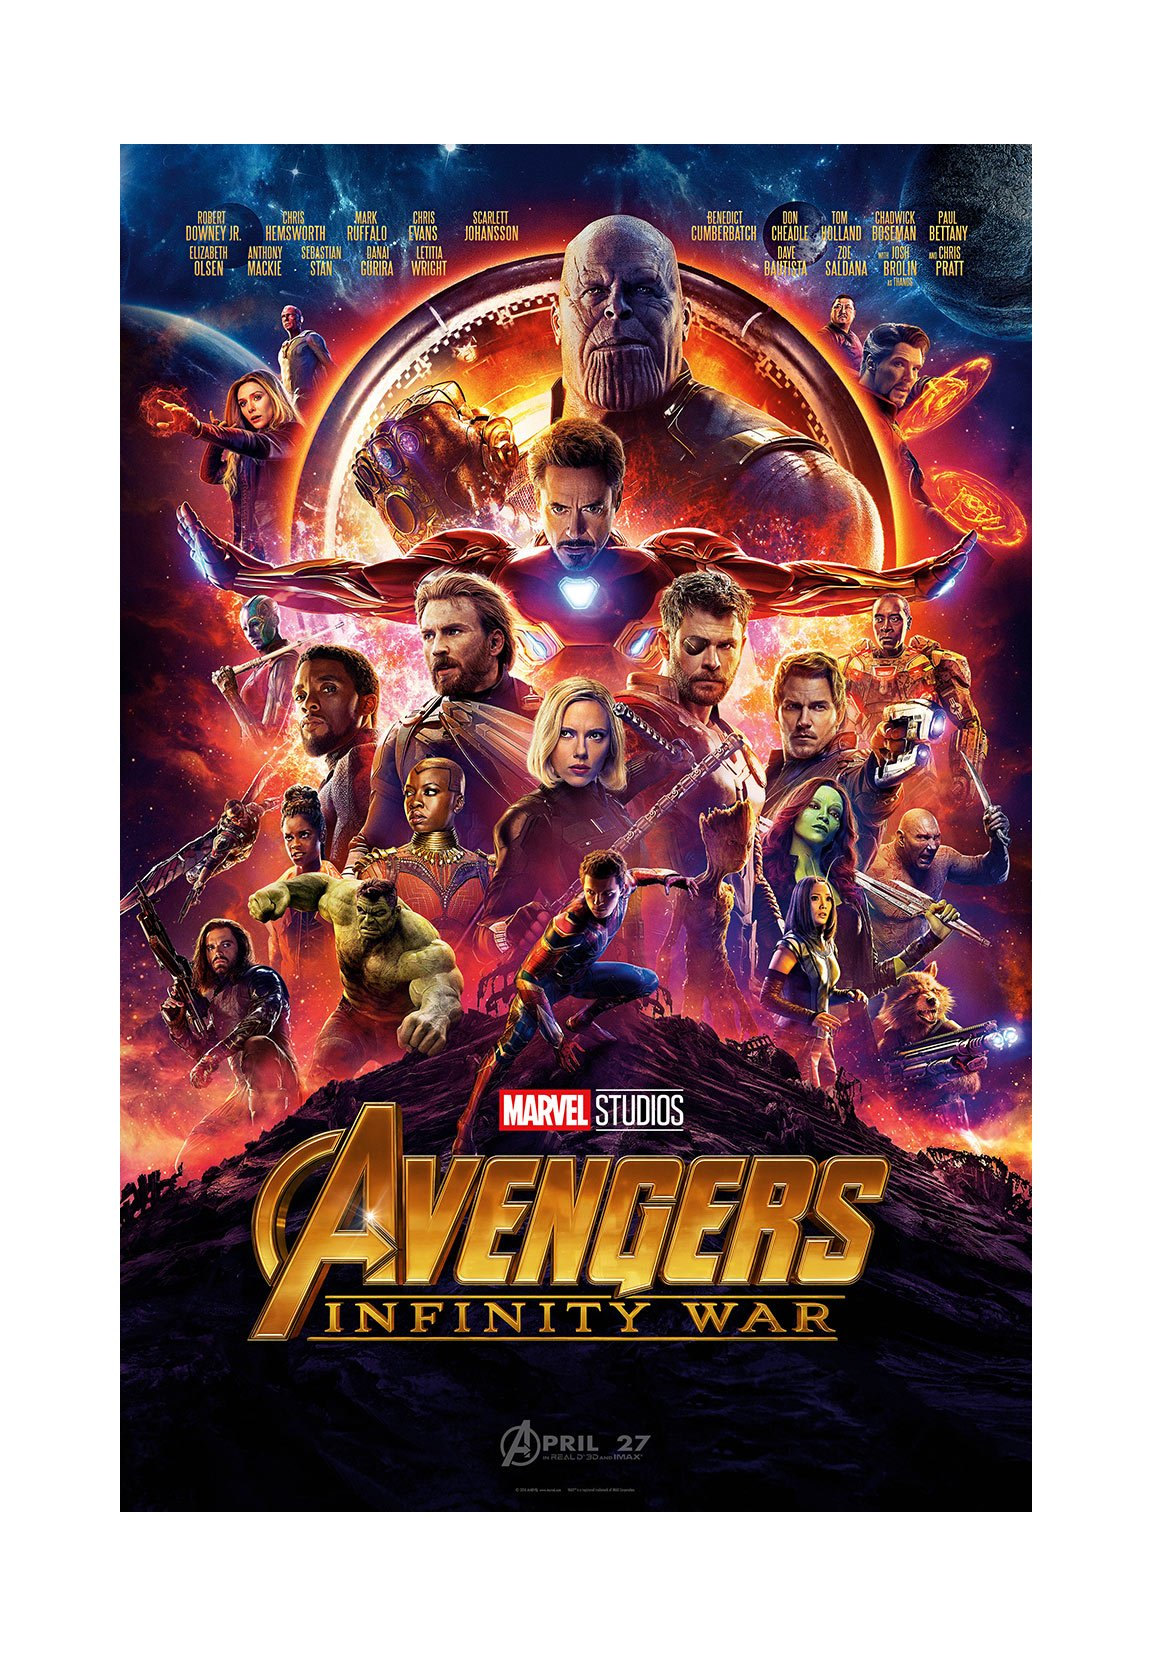 PosterOffice The Avengers Infinity War (Advance) Movie Poster - Size 24'' X 36'' - This is a Certified Print with Holographic Sequential Numbering for Authenticity.